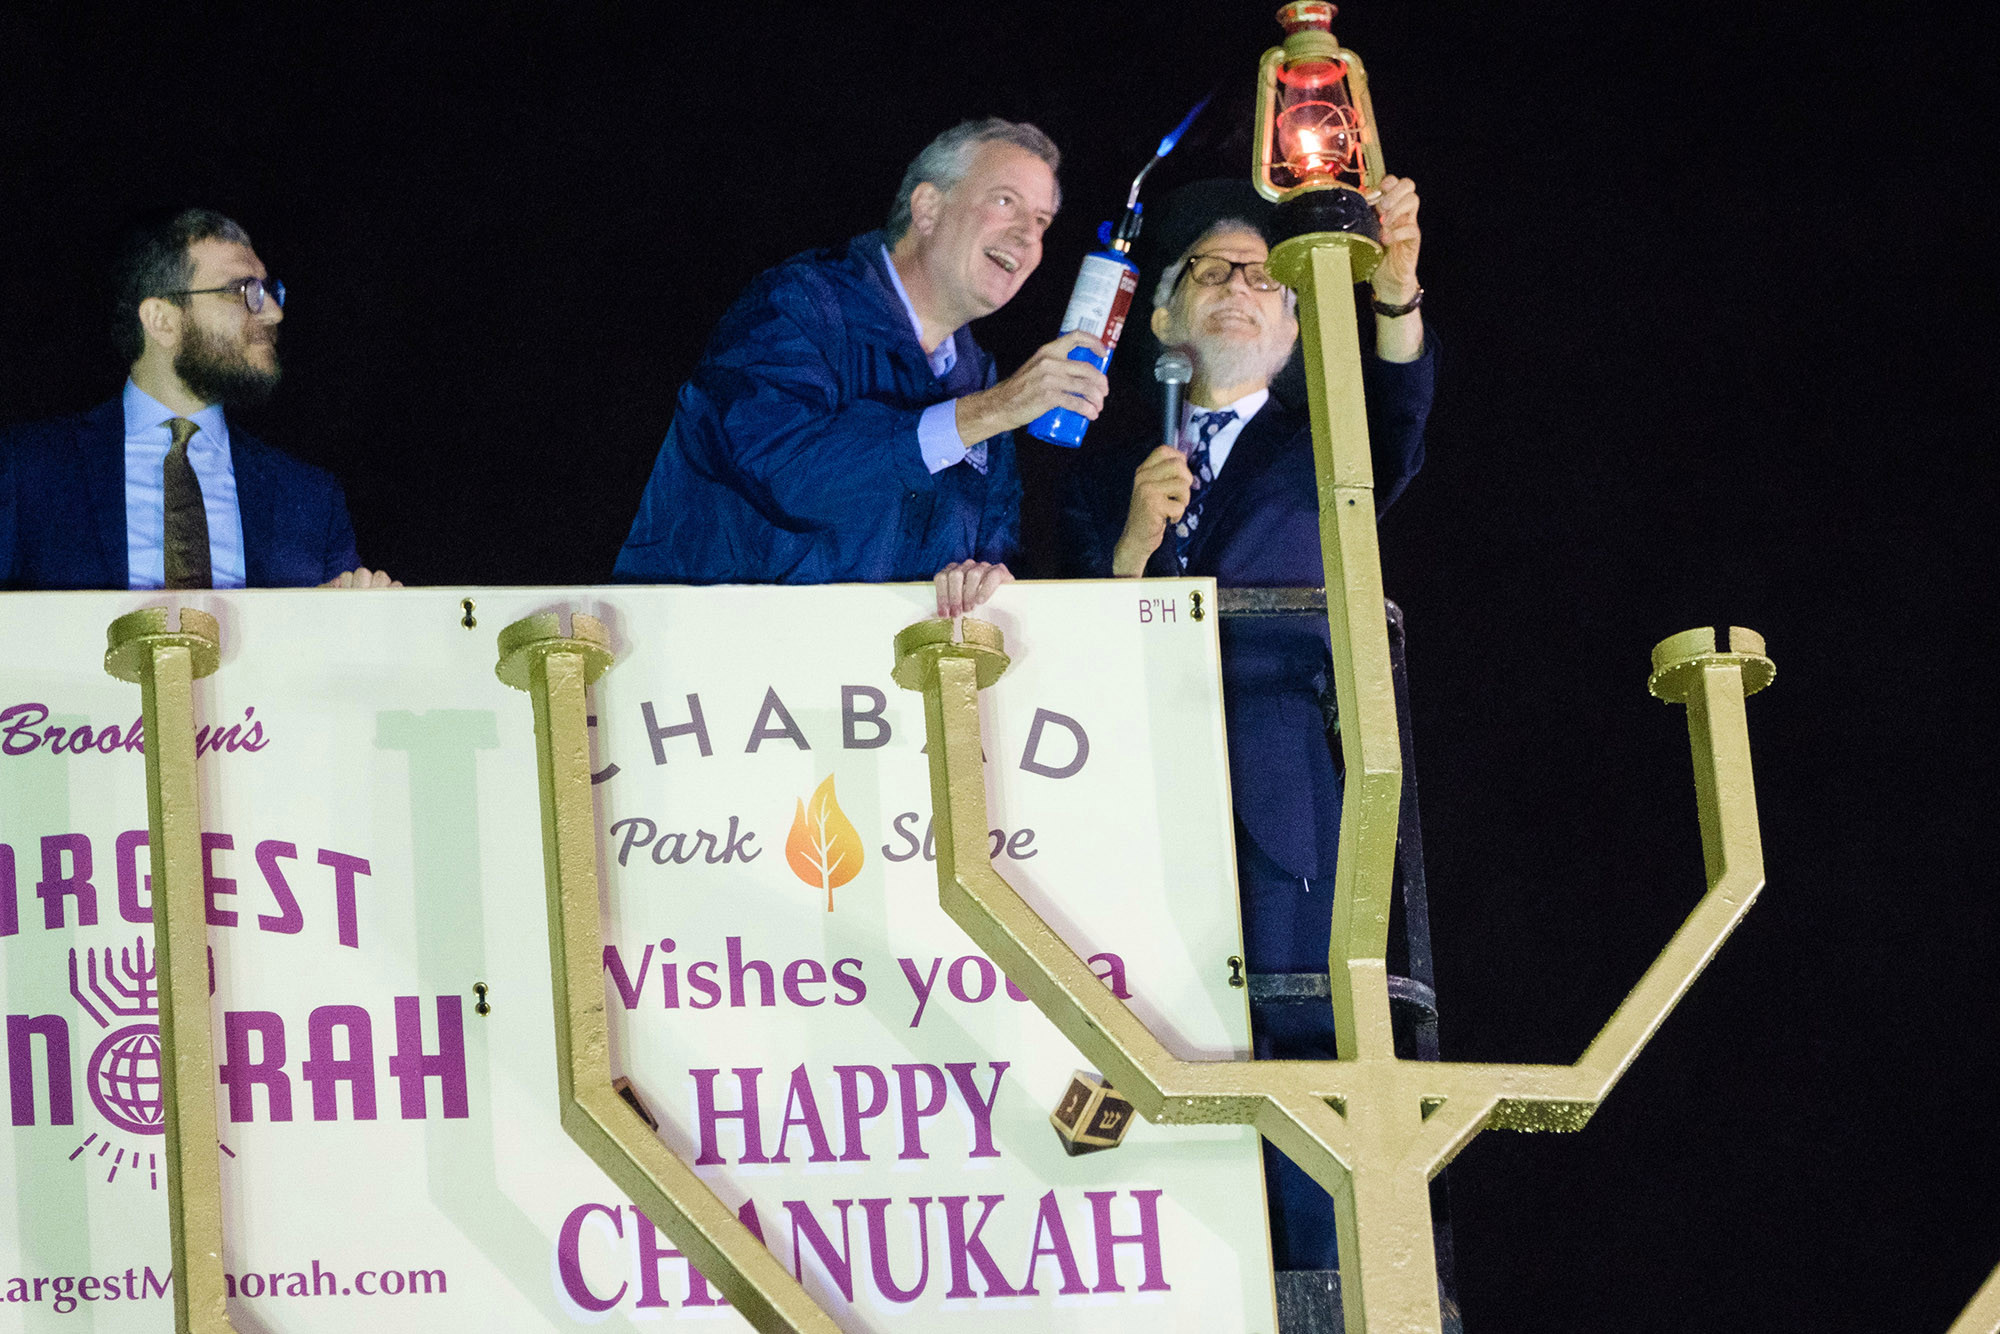 De Blasio shows up late again — this time for menorah lighting